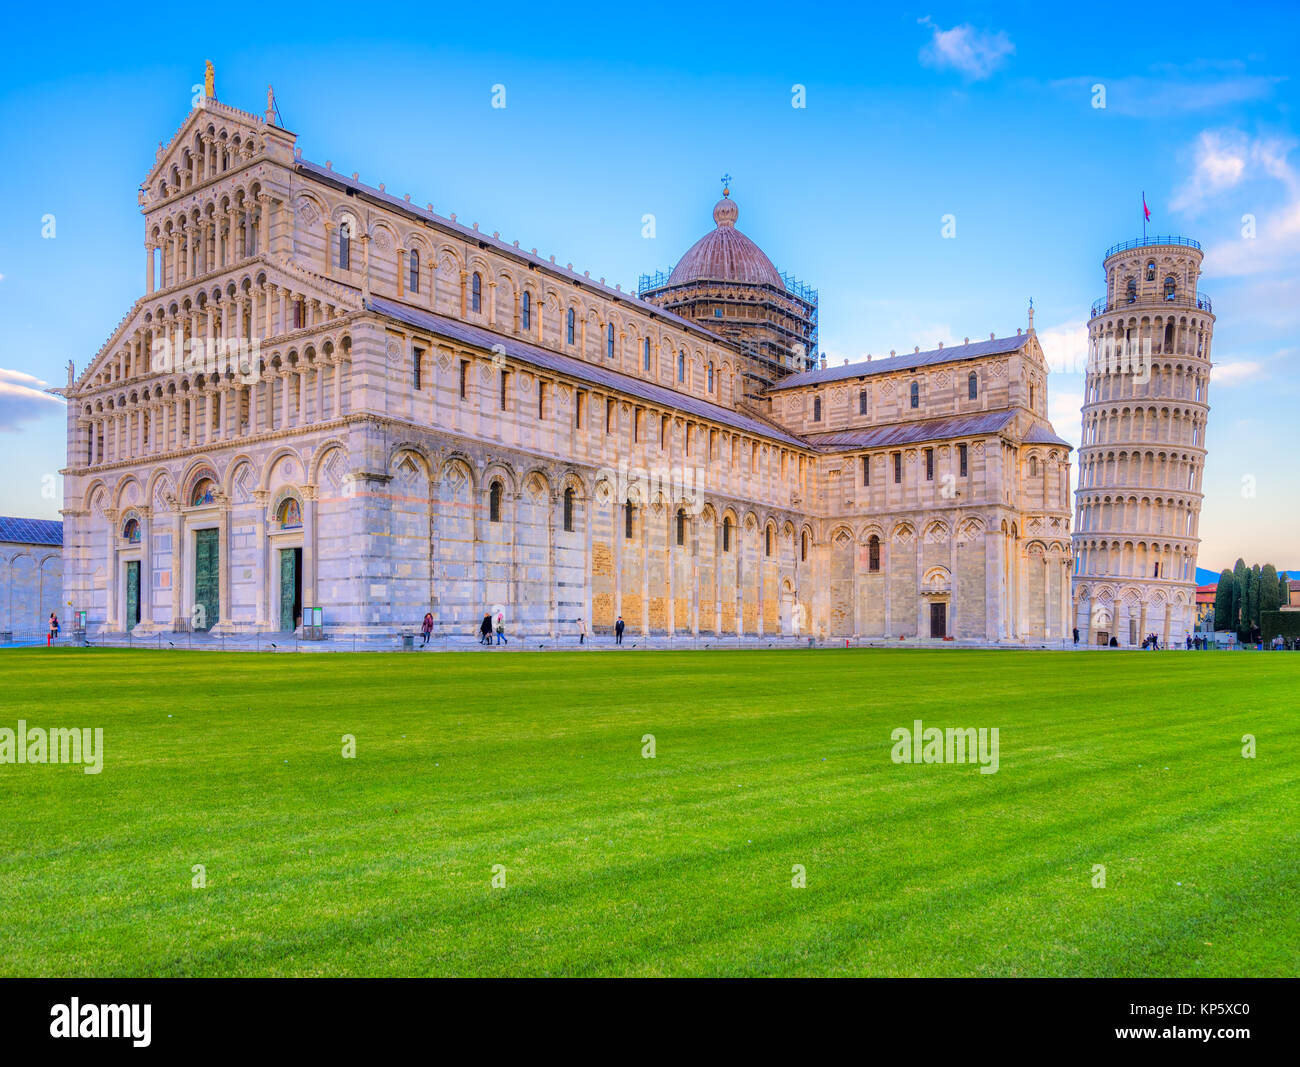 Pisa,The Leaning Tower. Tuscany, Italy. - Stock Image